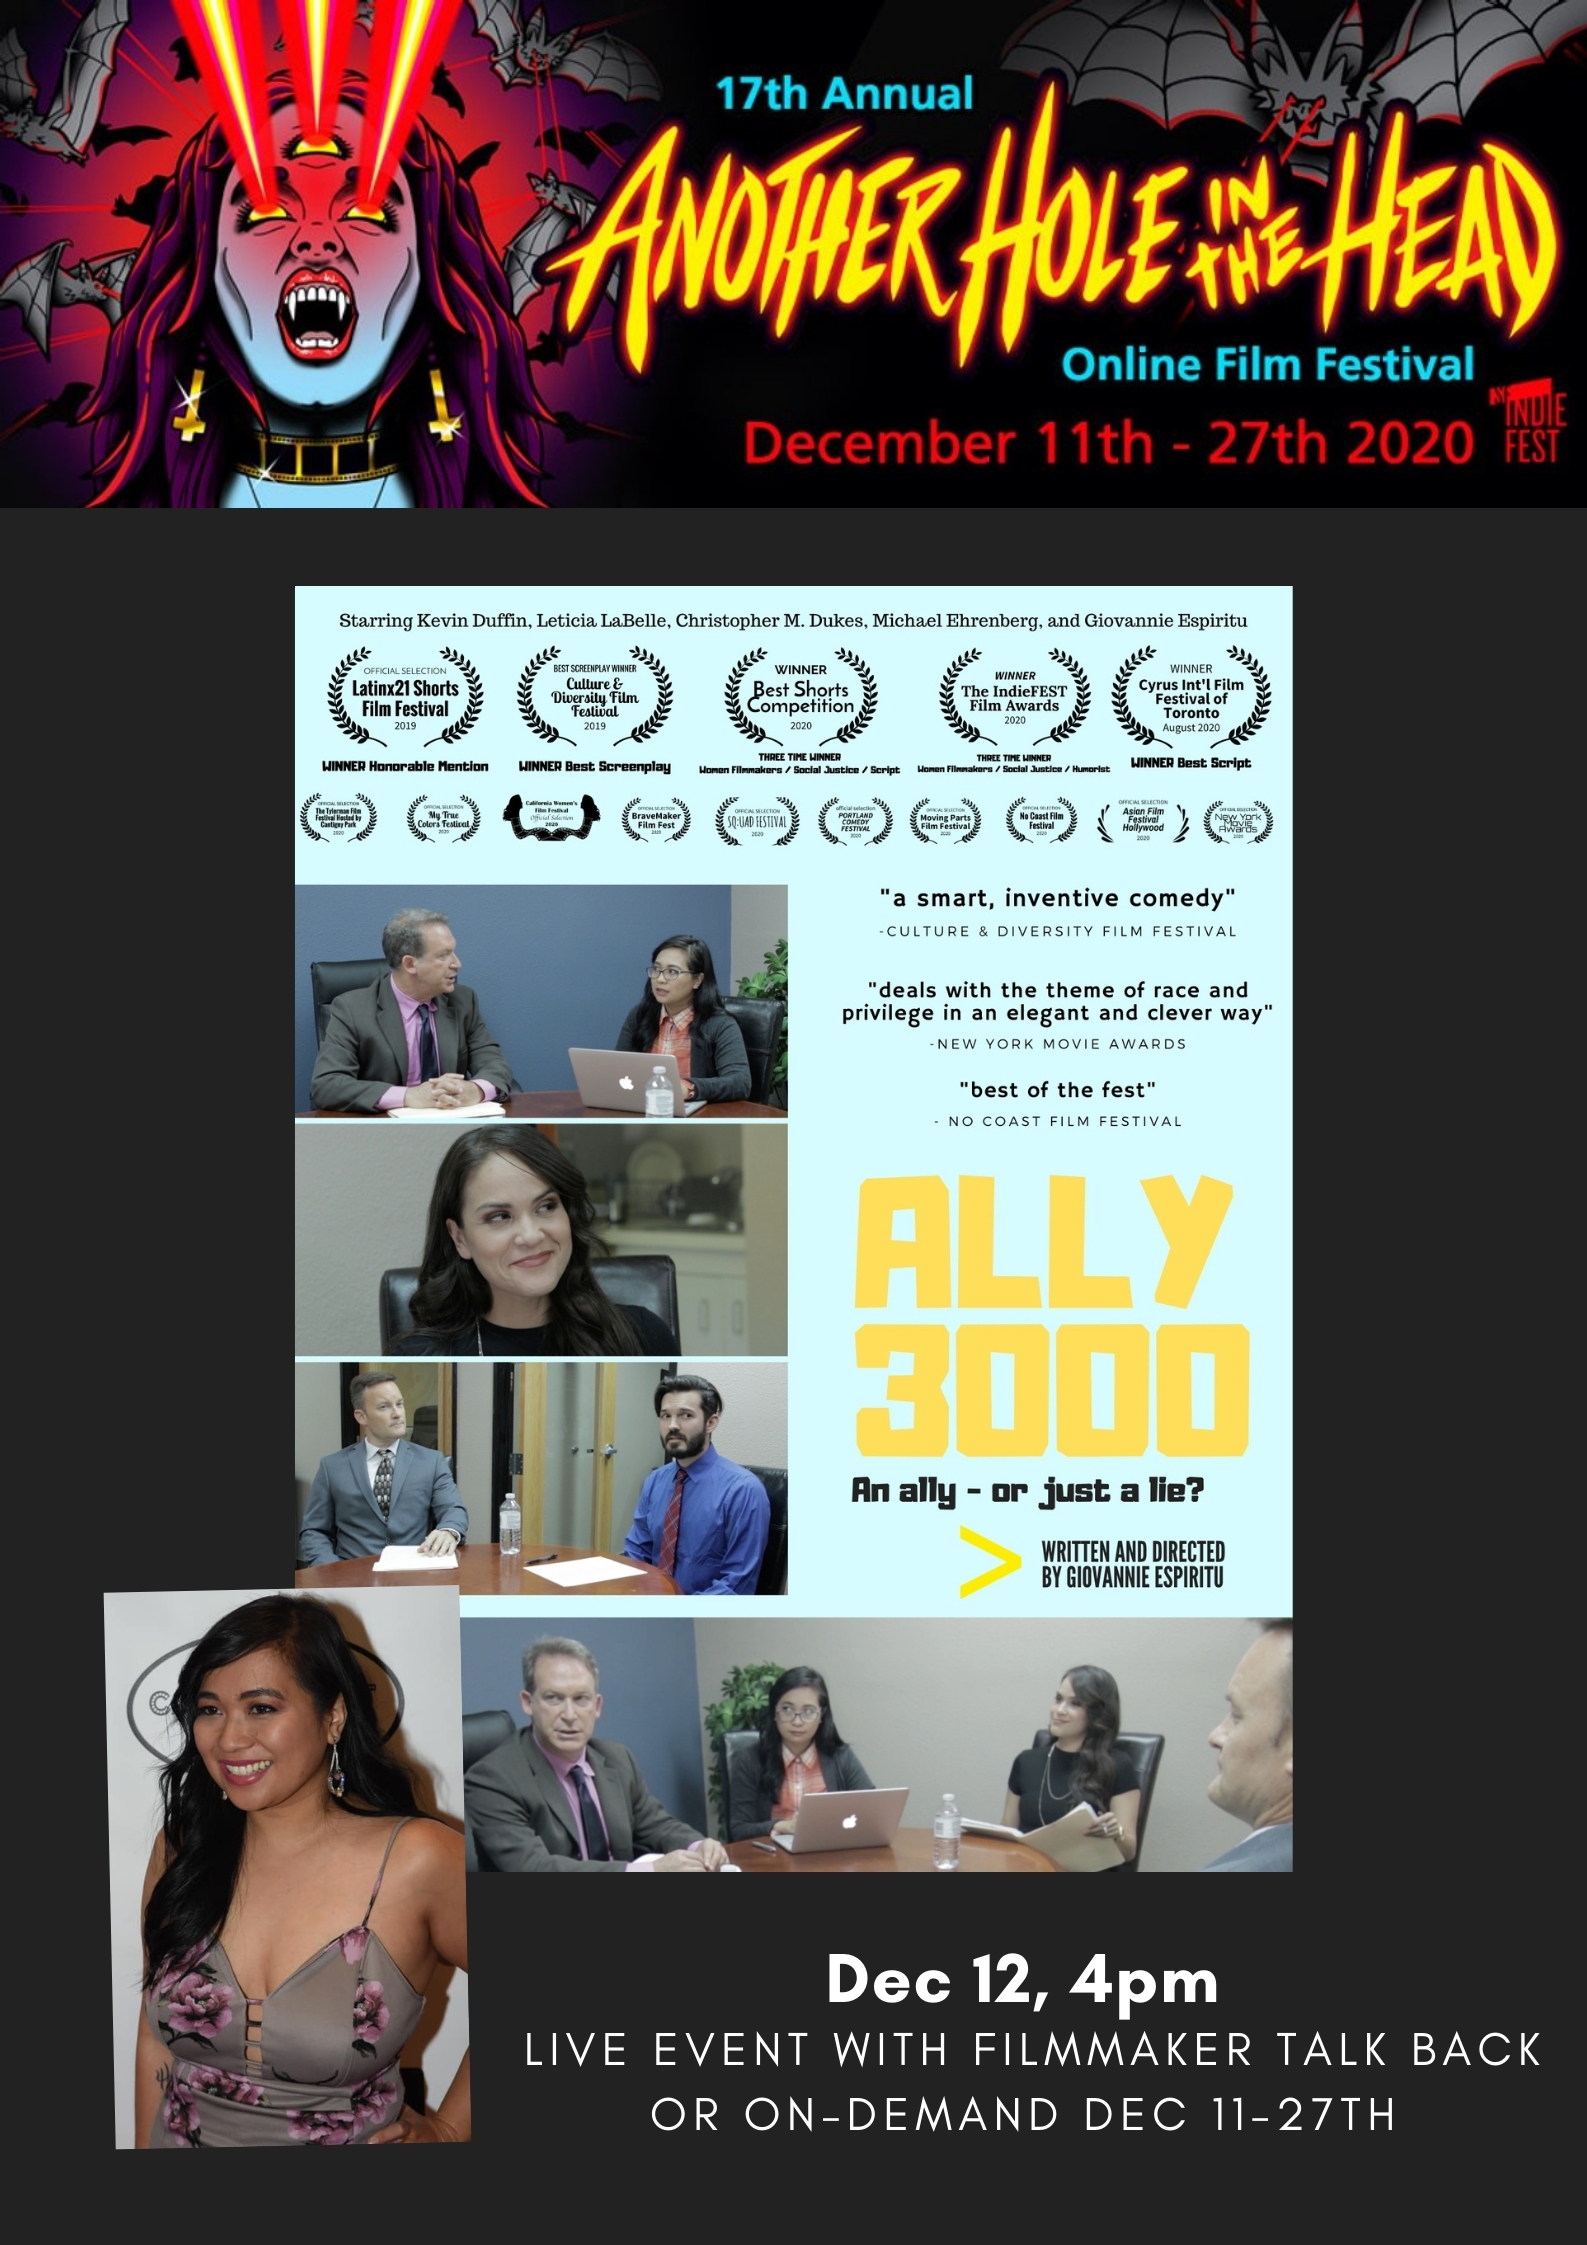 """Filipina filmmaker Giovannie Espiritu returns to the """"Another Hole in the Head"""" Bay Area film festival with her satirical film on race and privilege ALLY 3000 1"""